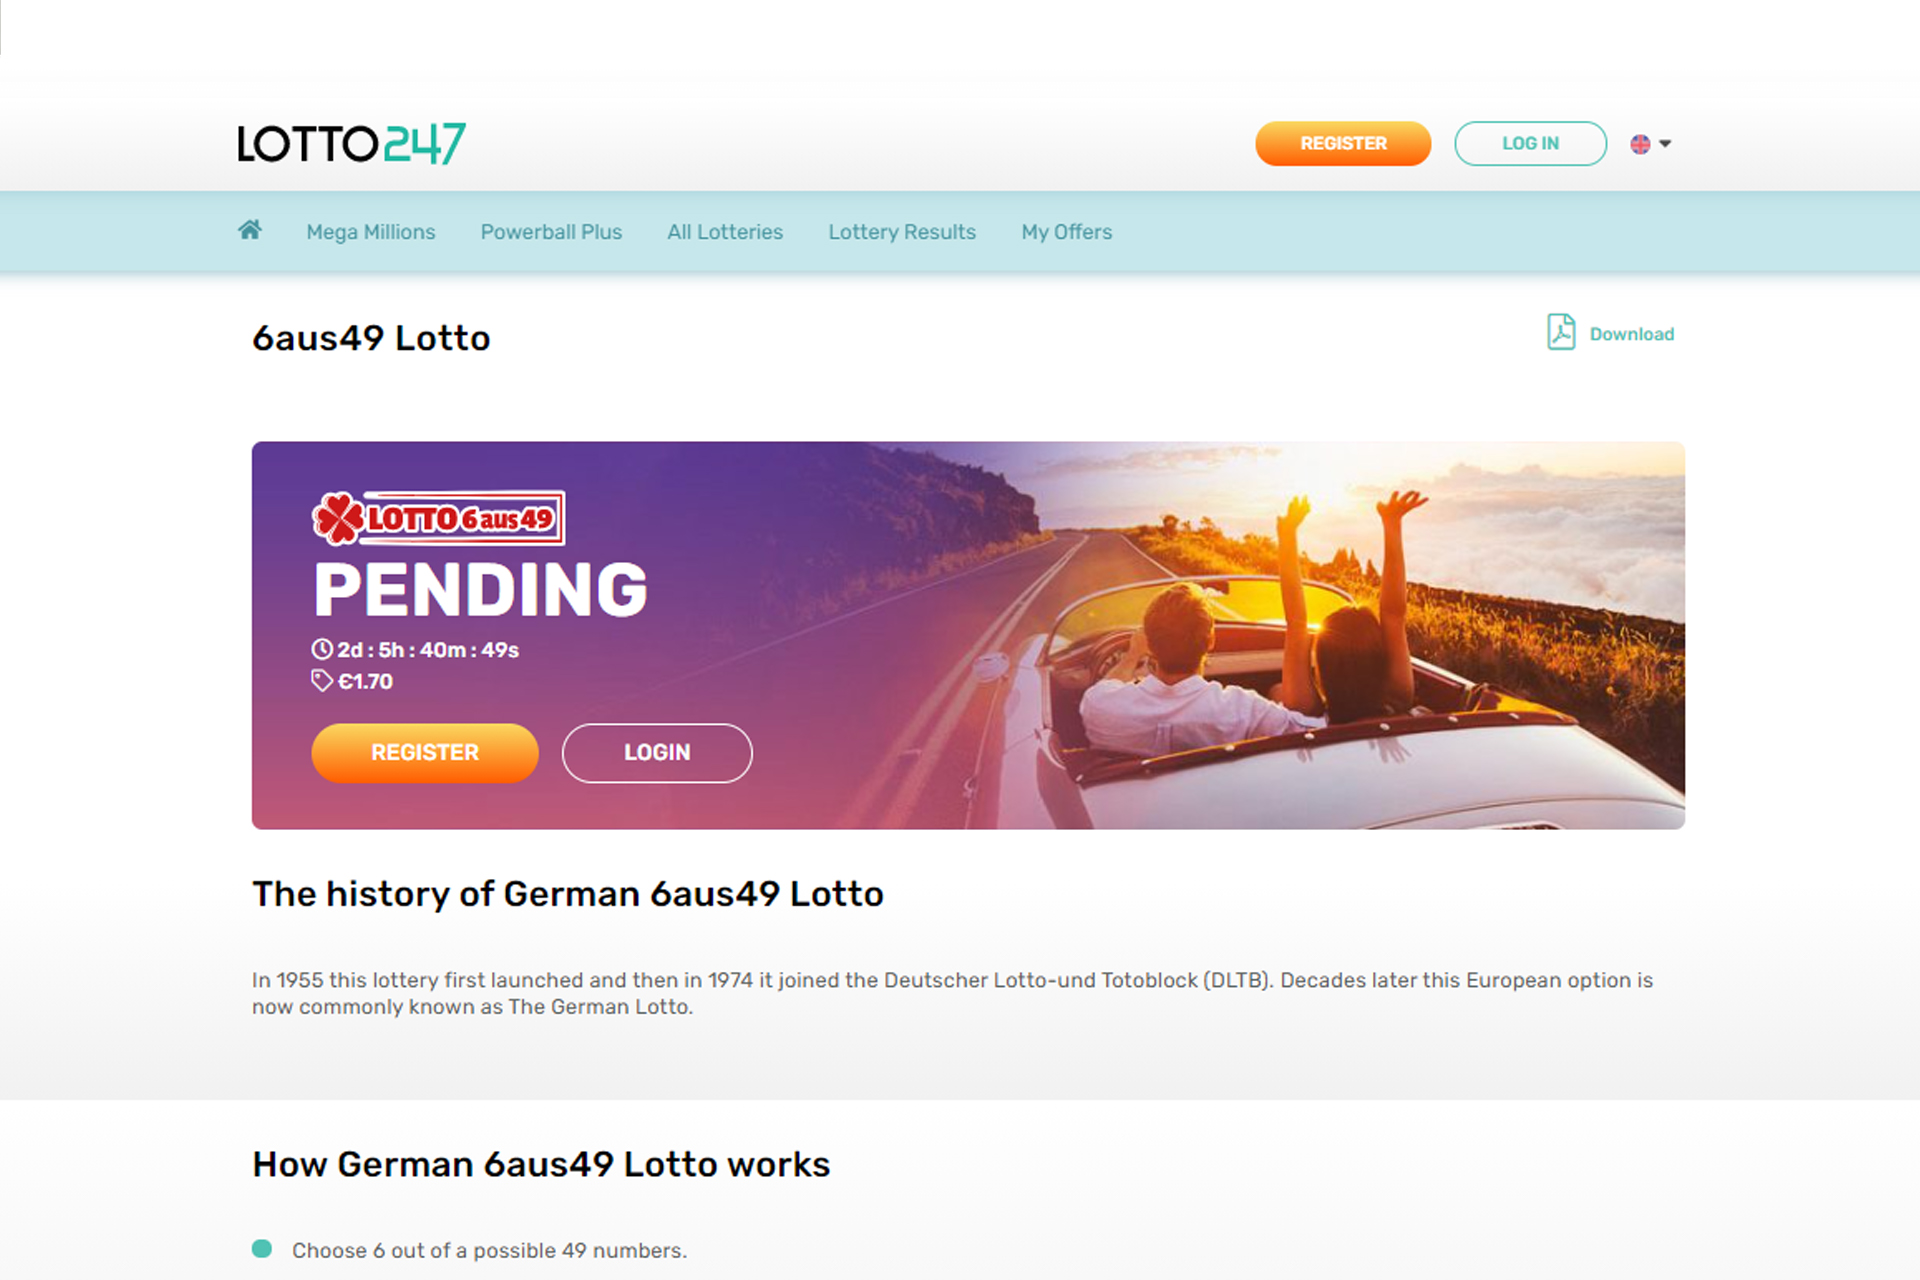 One of the oldest lotteries that give you a chance to win over 25 million euros.